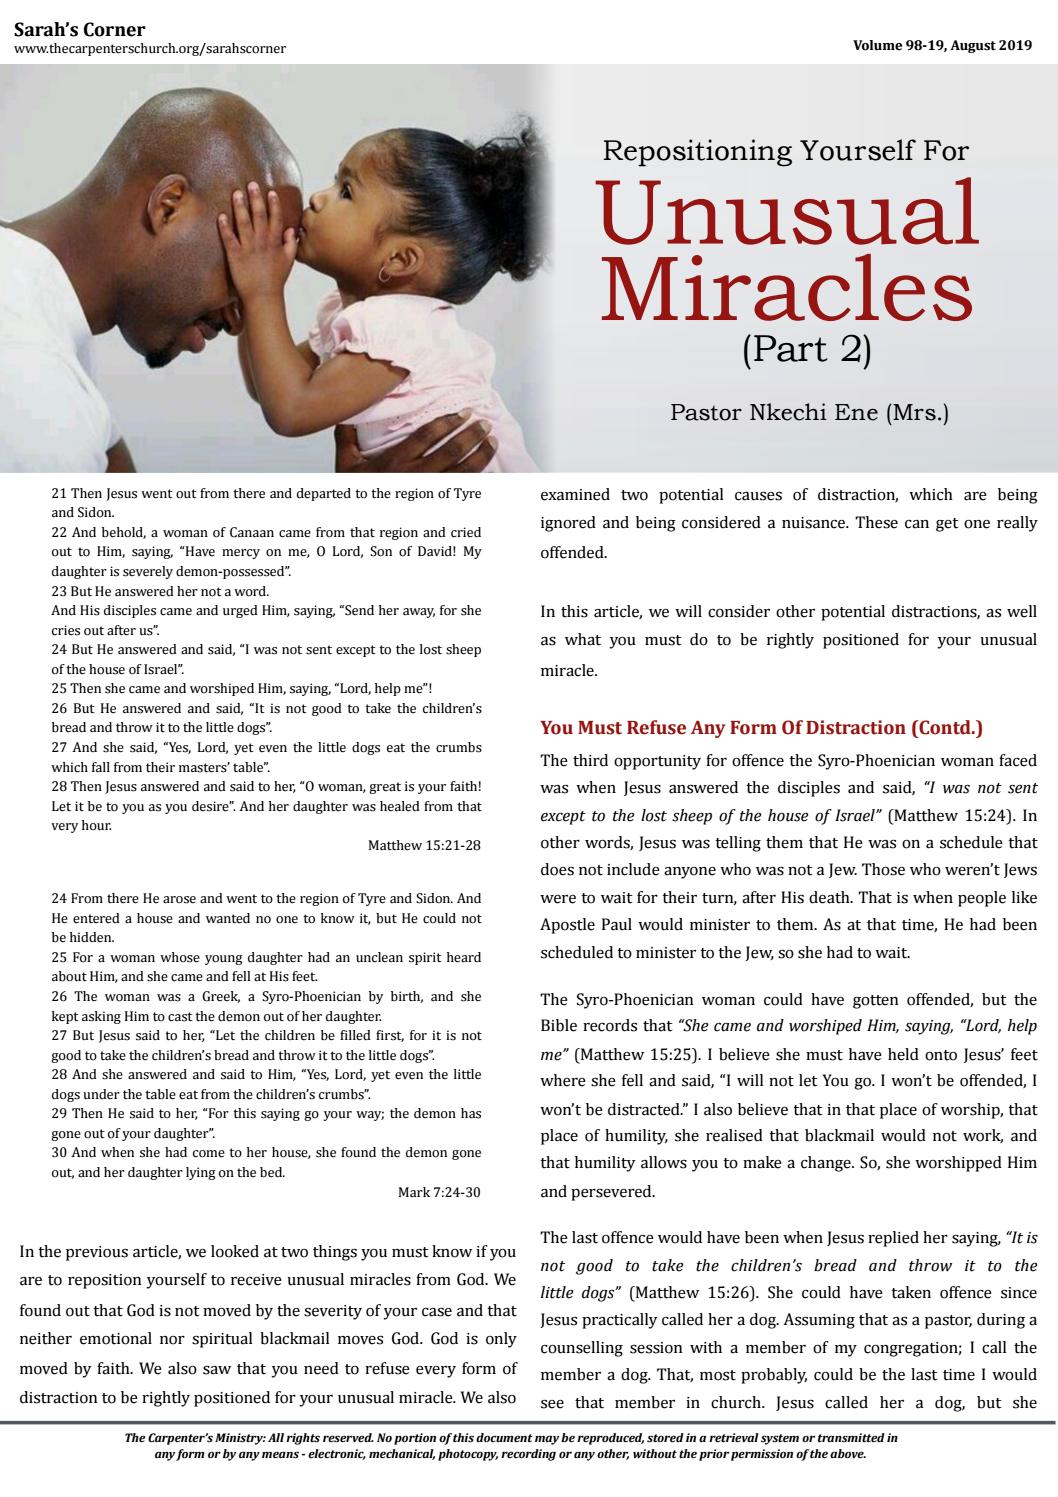 Repositioning Yourself To Receive An Unusual Miracle (Part 2